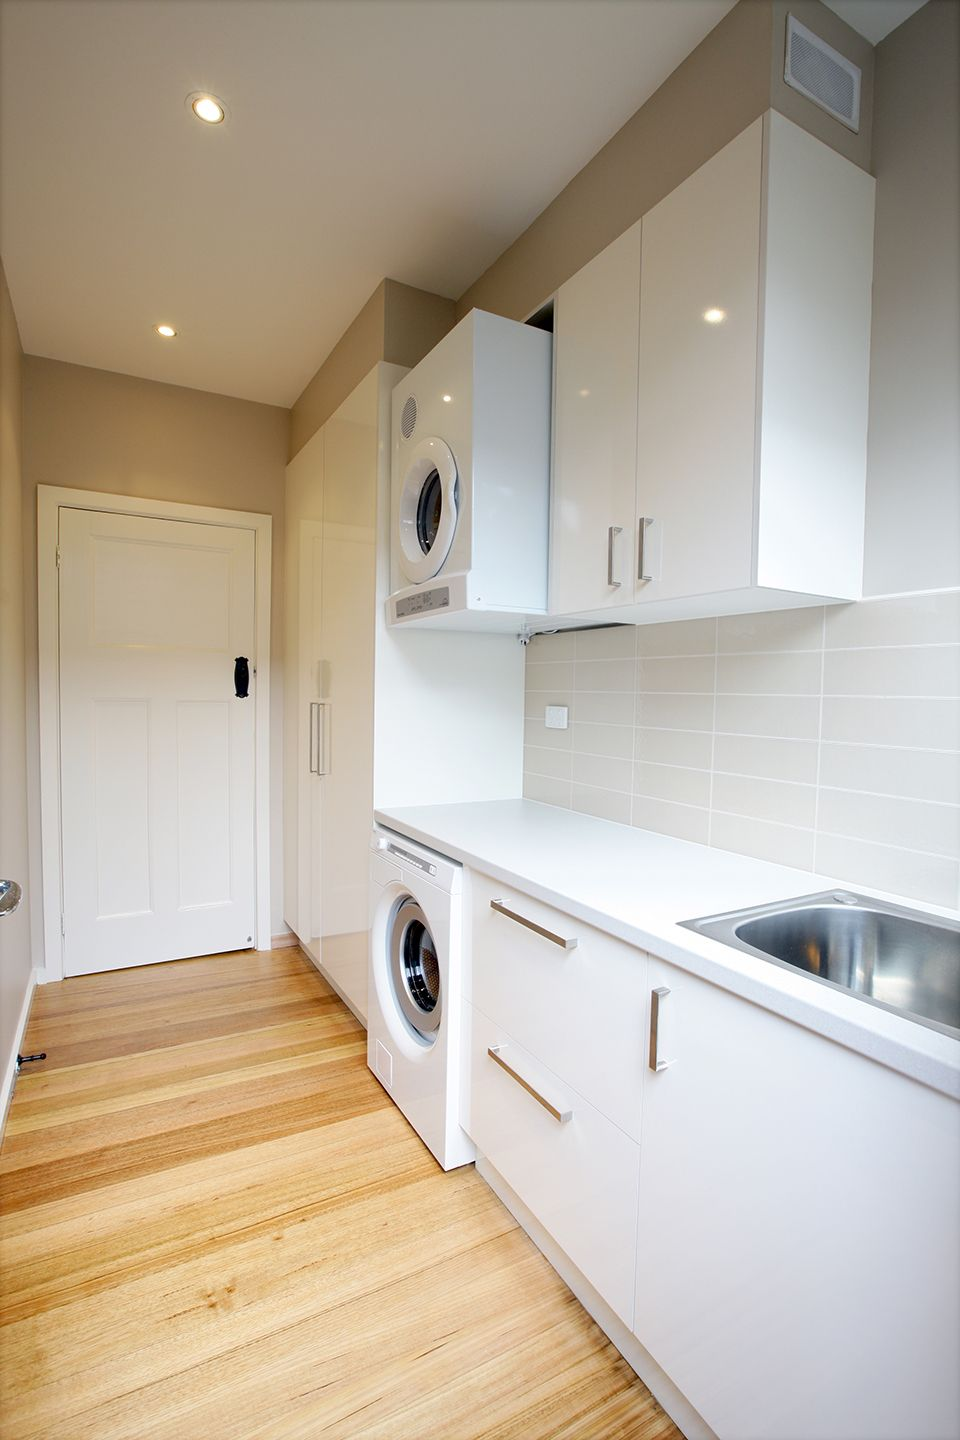 Laundry Renovations in Melbourne | Laundry room design ...